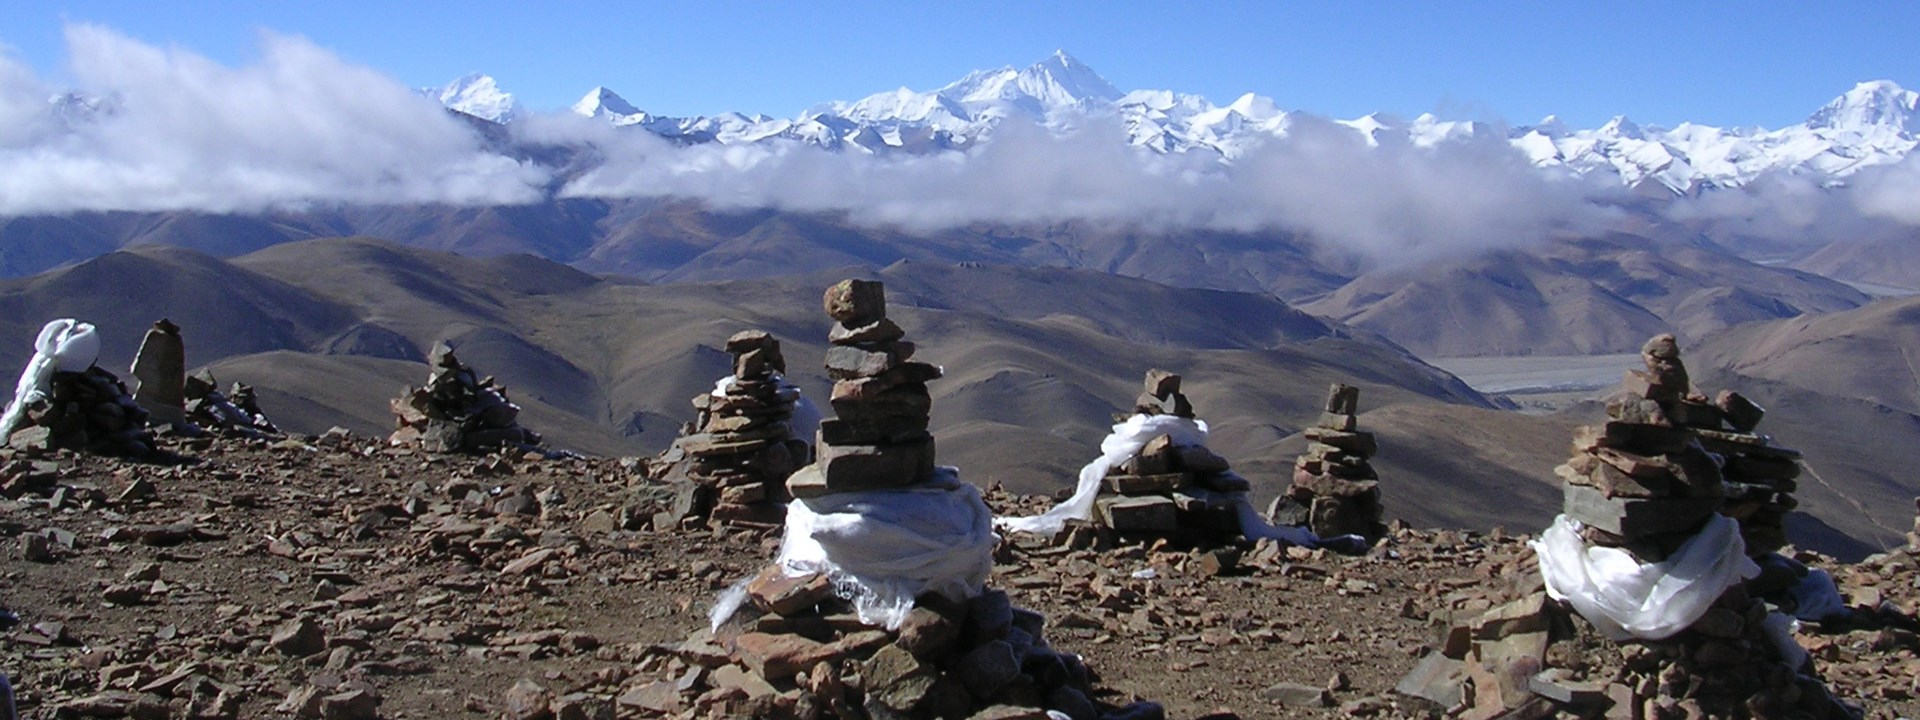 Qomolangma (Everest)